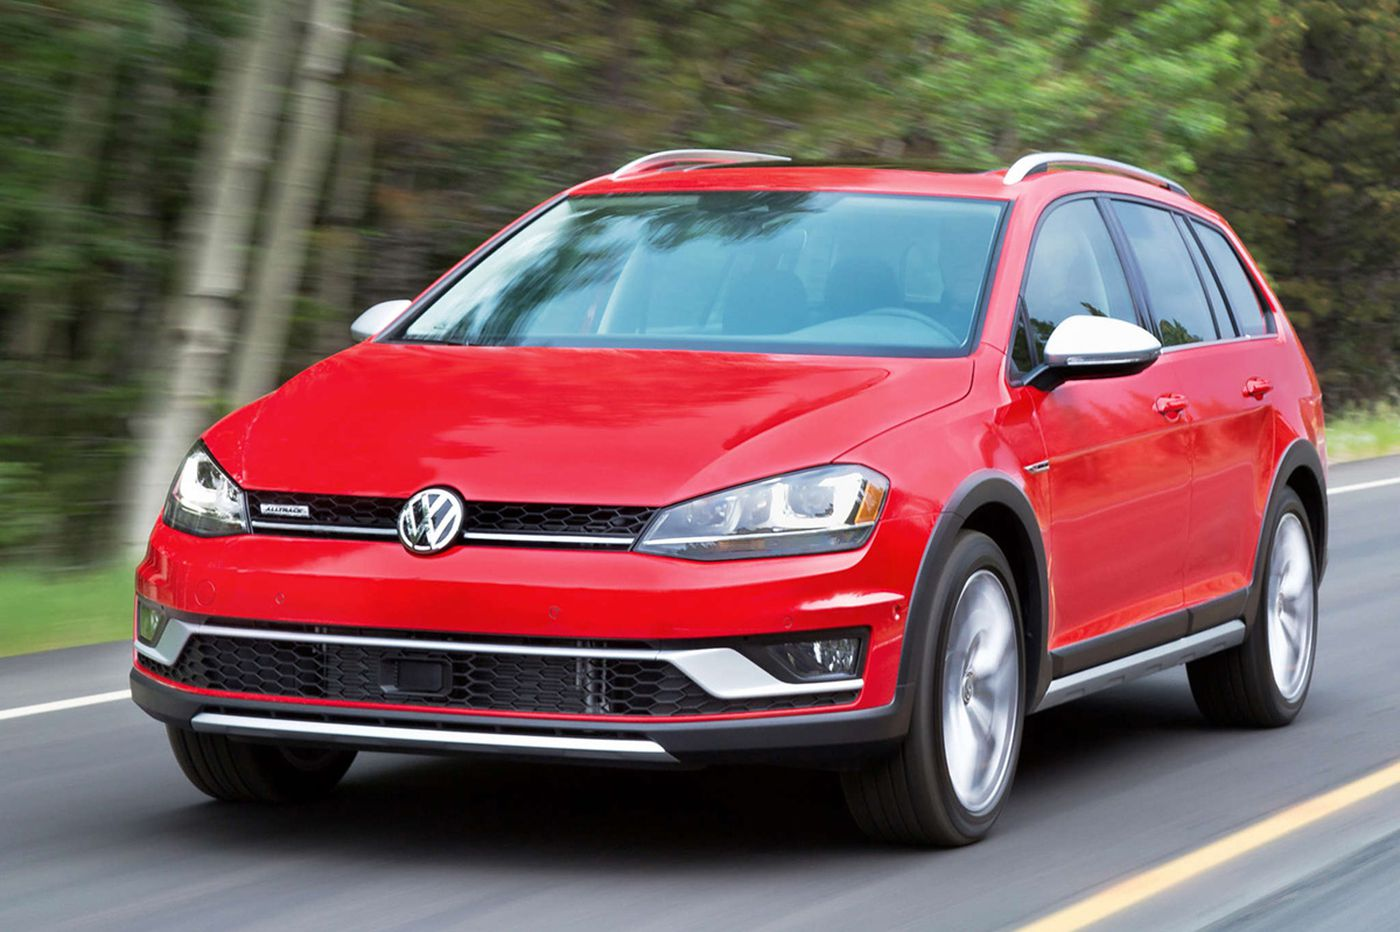 New Volkswagen Alltrack takes aim at the Outback